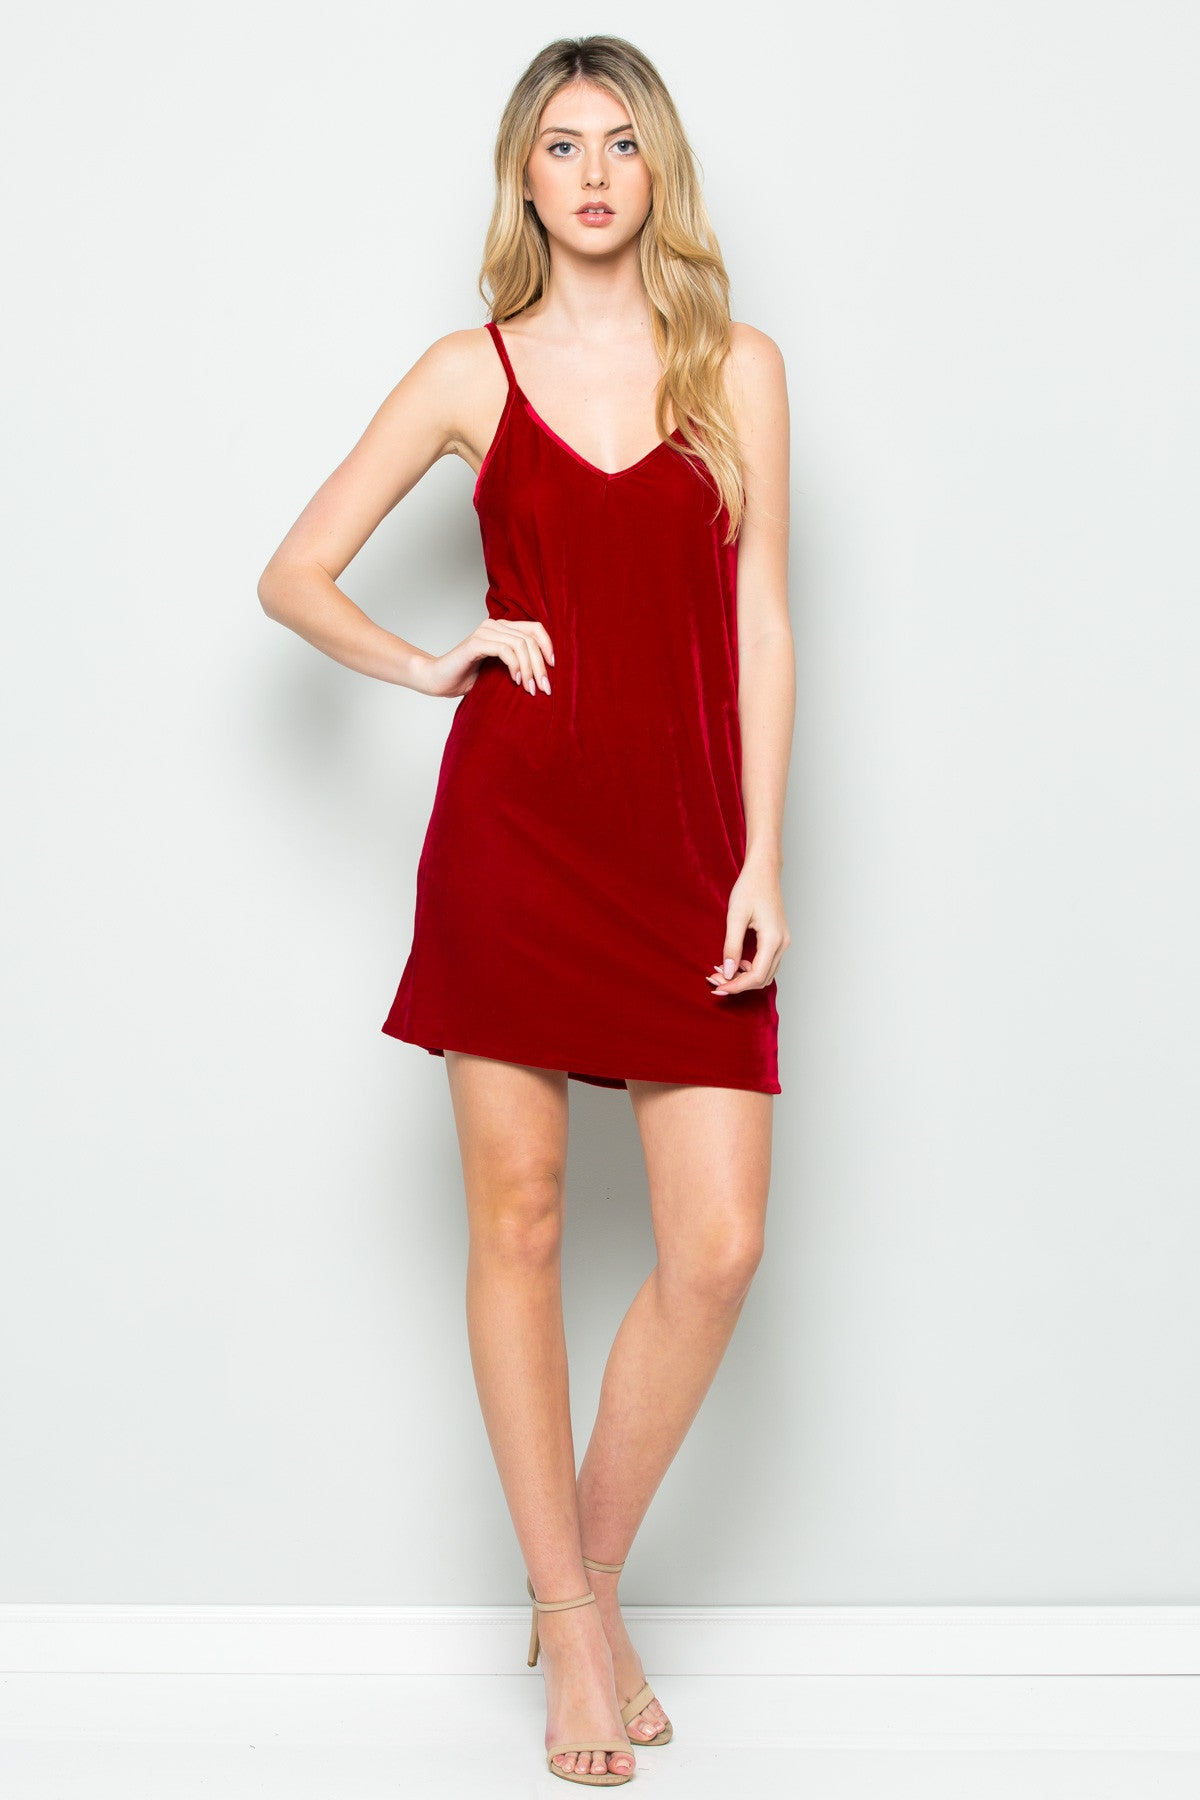 Open Back Crush Velvet Cami Slip Dress in Red - Dresses - My Yuccie - 9